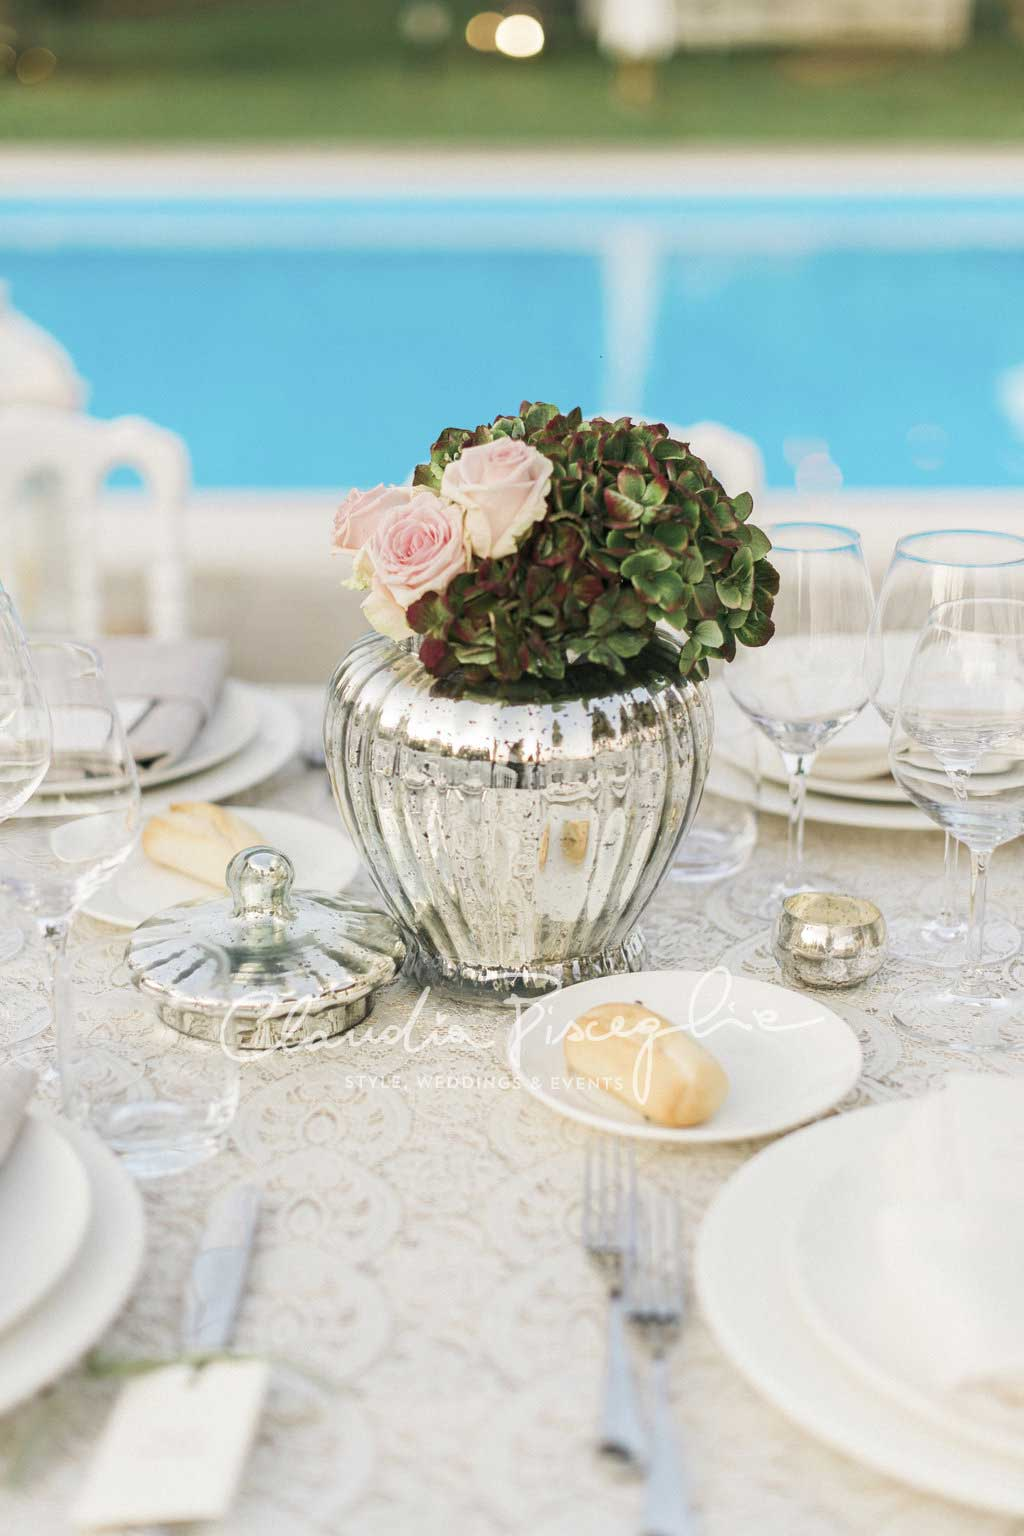 -Table-place-holder-details-luxurywedding-details